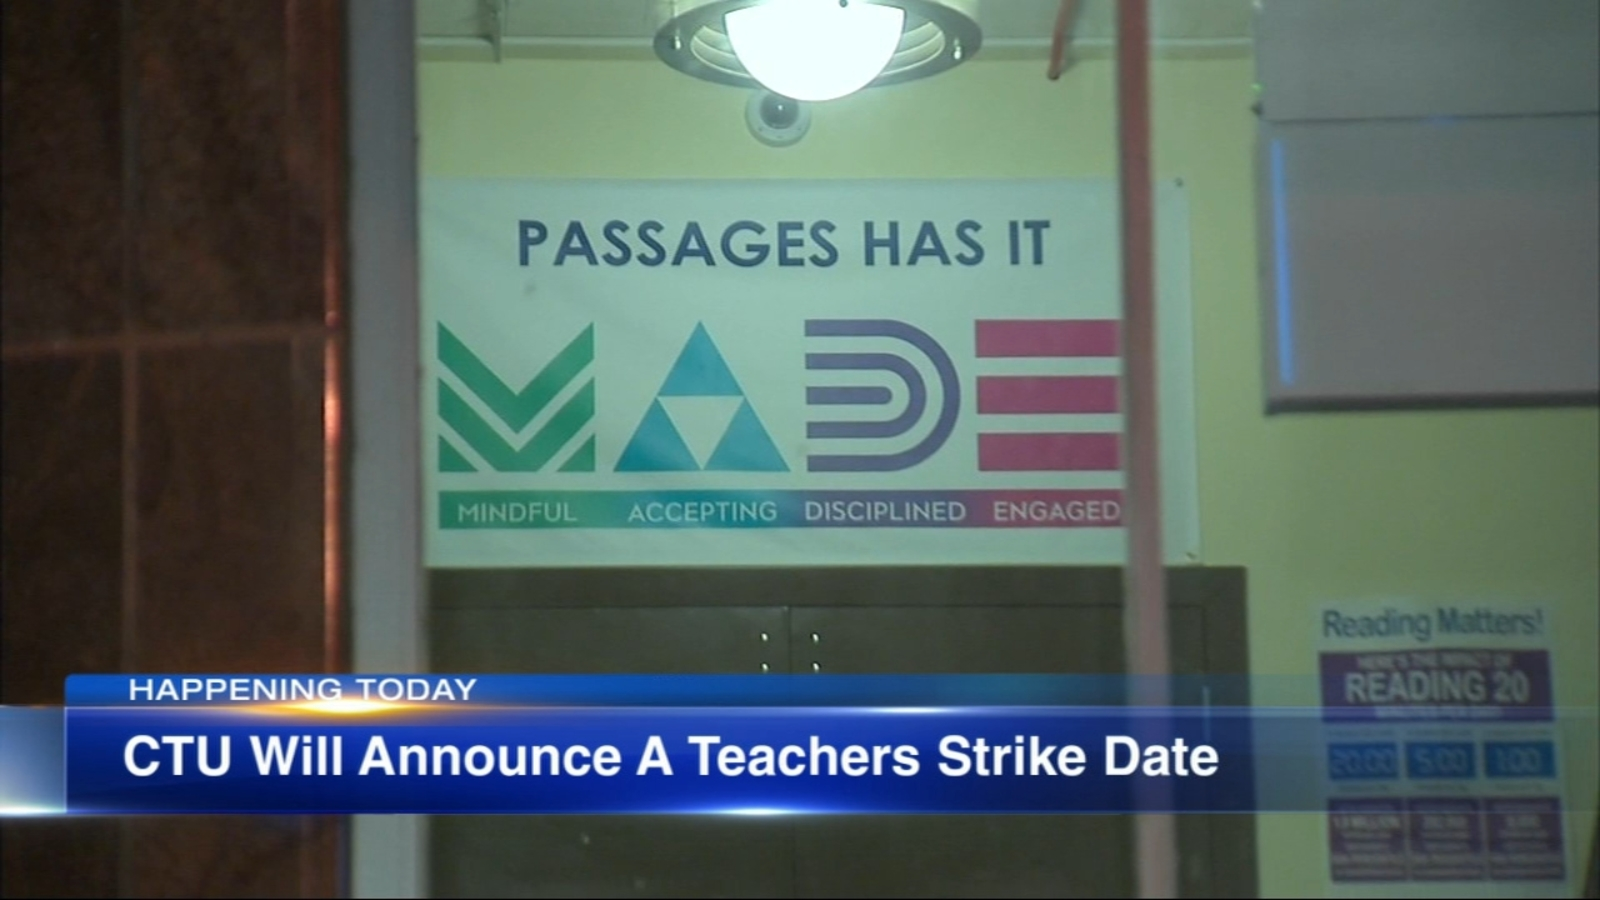 Chicago Teachers Union joins Passages Charter School to announce strike date